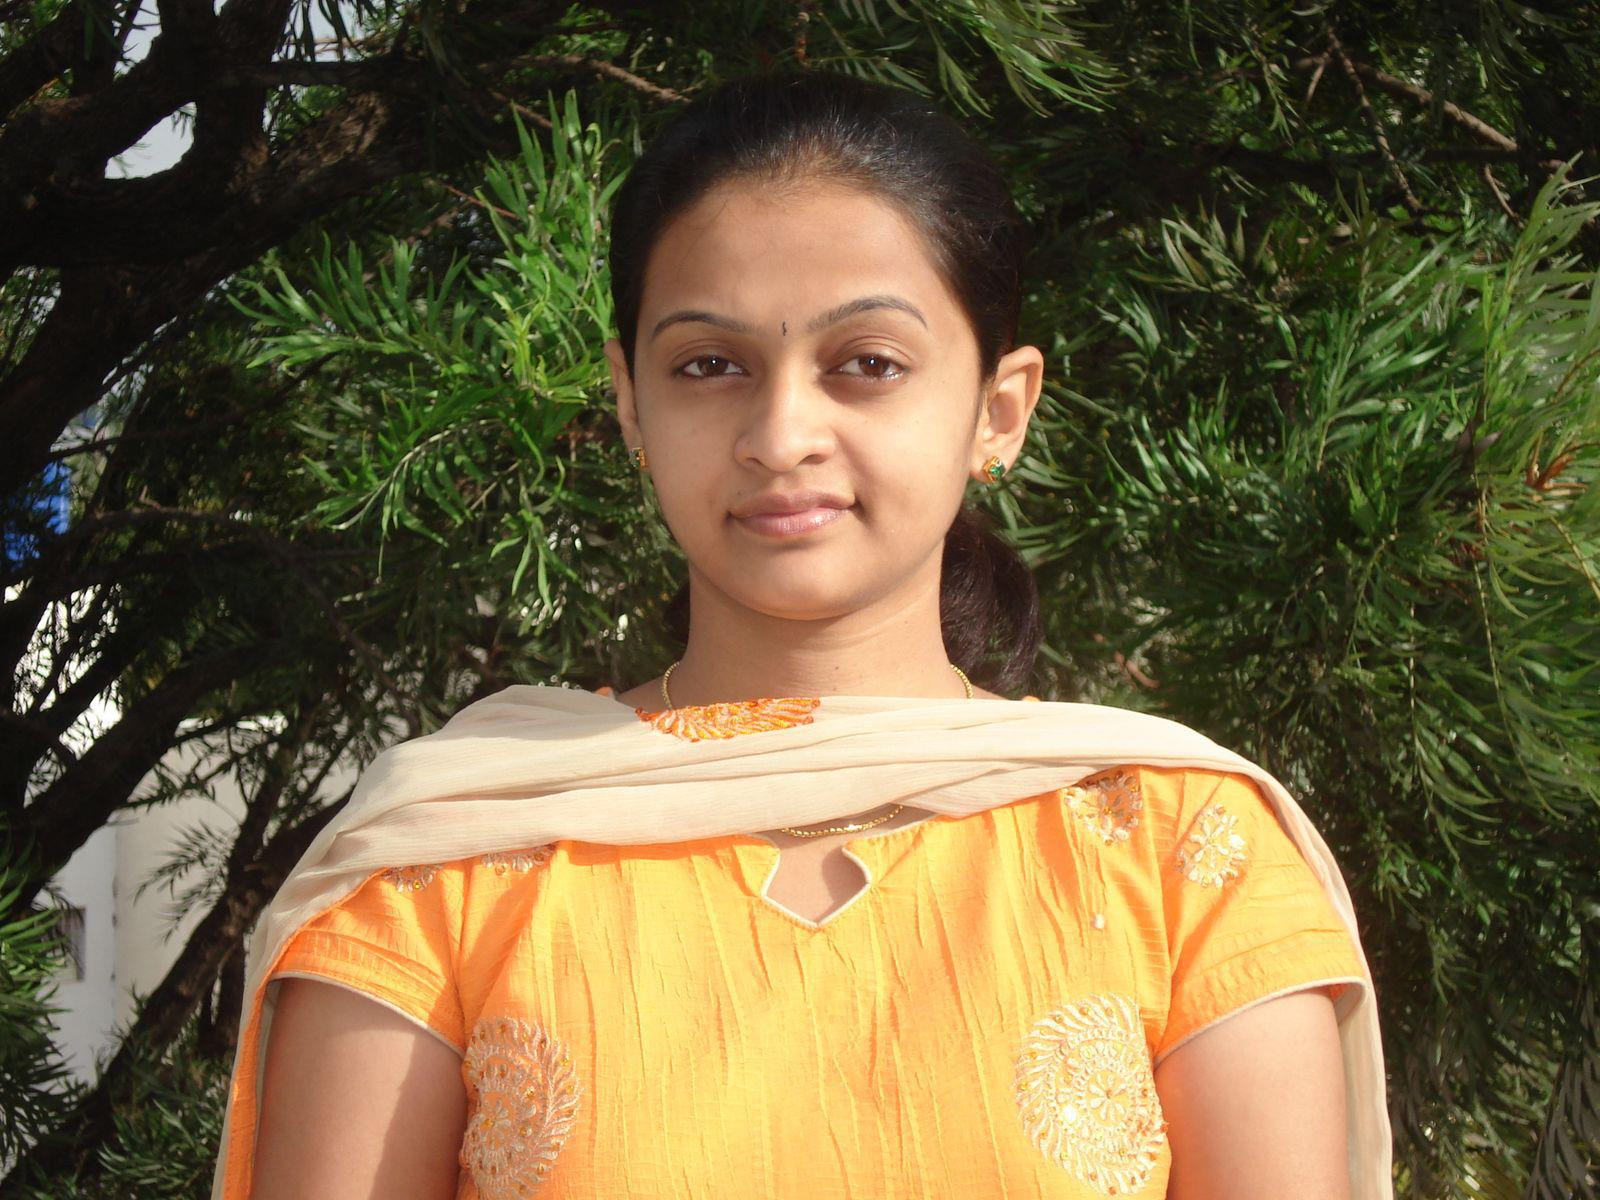 east hampstead hindu single women Are you looking for indian single women to marry loveawakecom brings single women searching for love meet women for marriage from india.